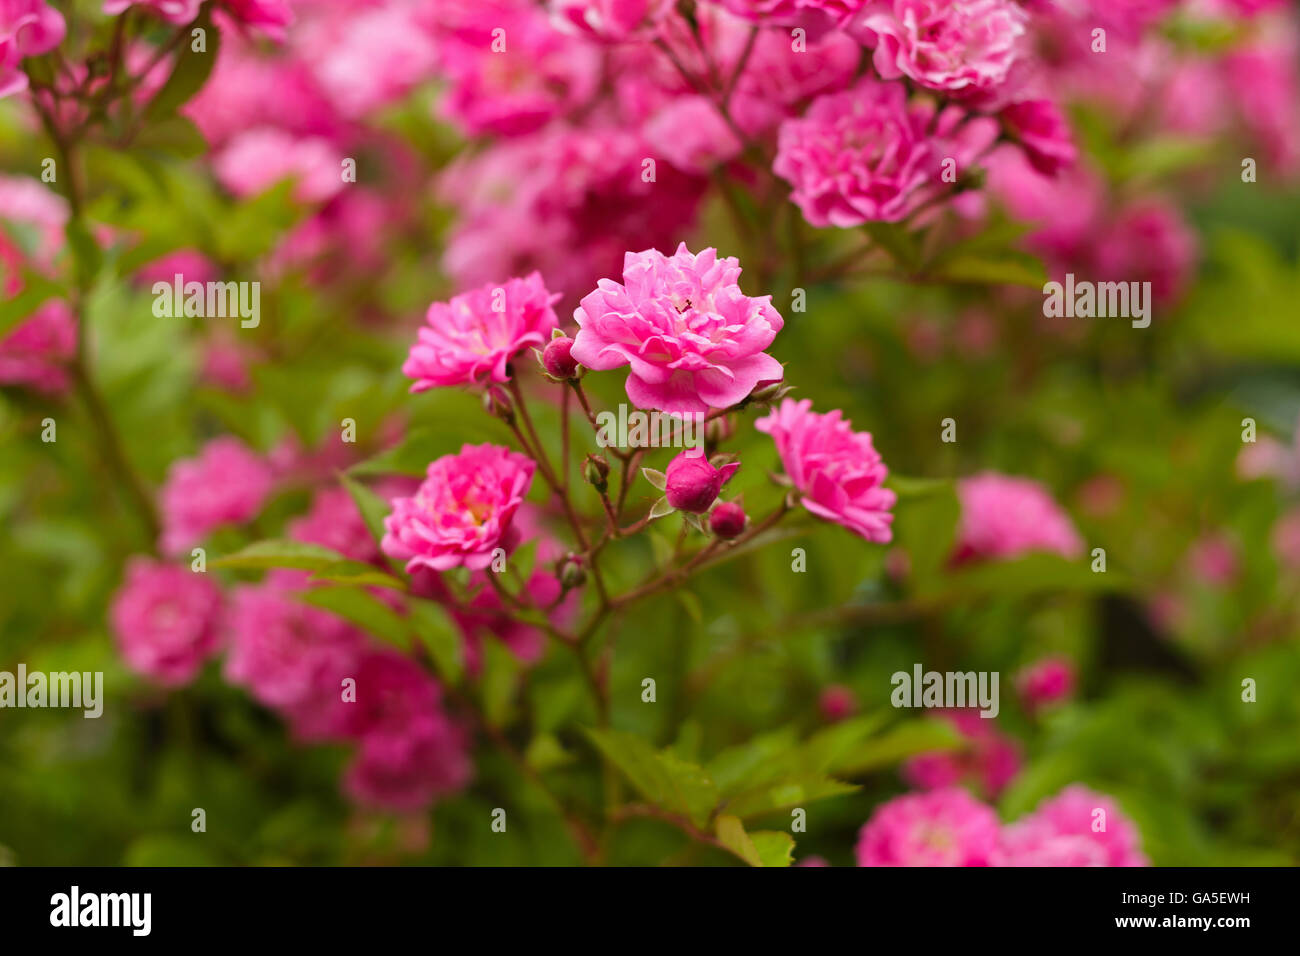 rose view of flowers blurred background - Stock Image